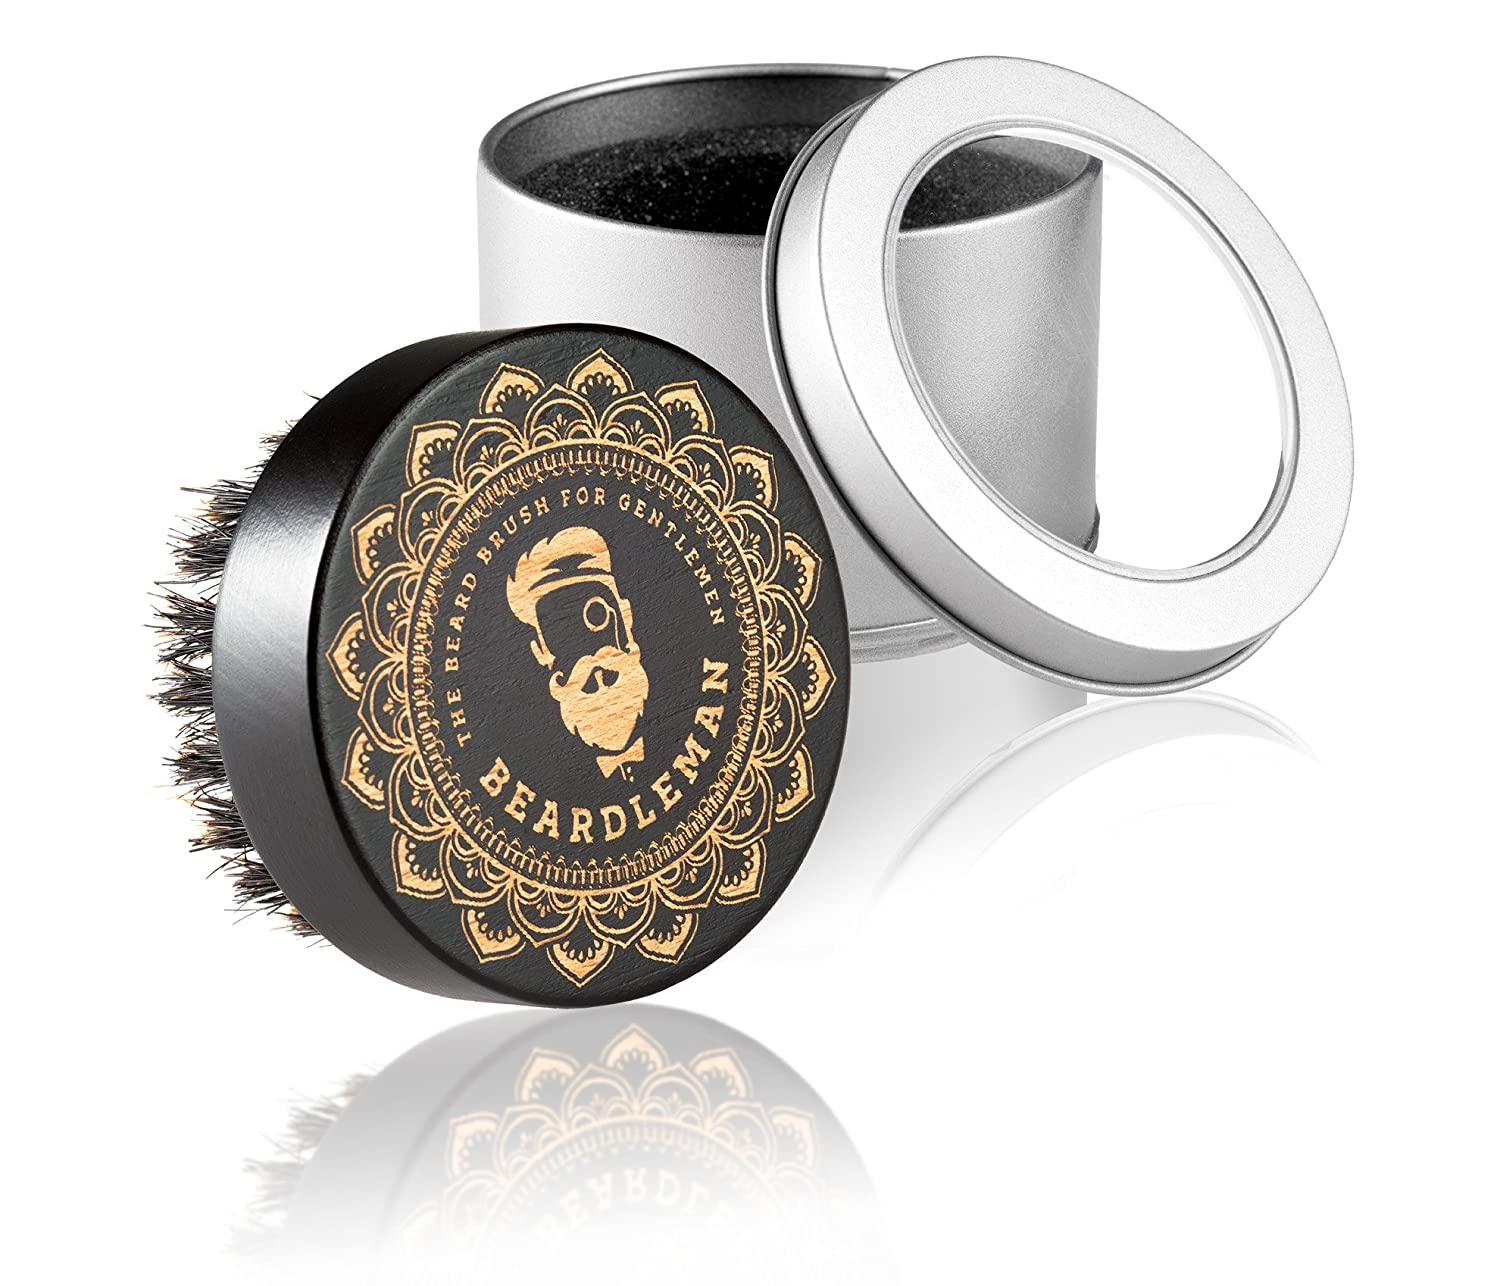 New. Beardleman's Premium Beard Brush with Genuine Boar Bristle and Elegant and Unique Design – Great to Repeat Beards. This is a must for any gentleman